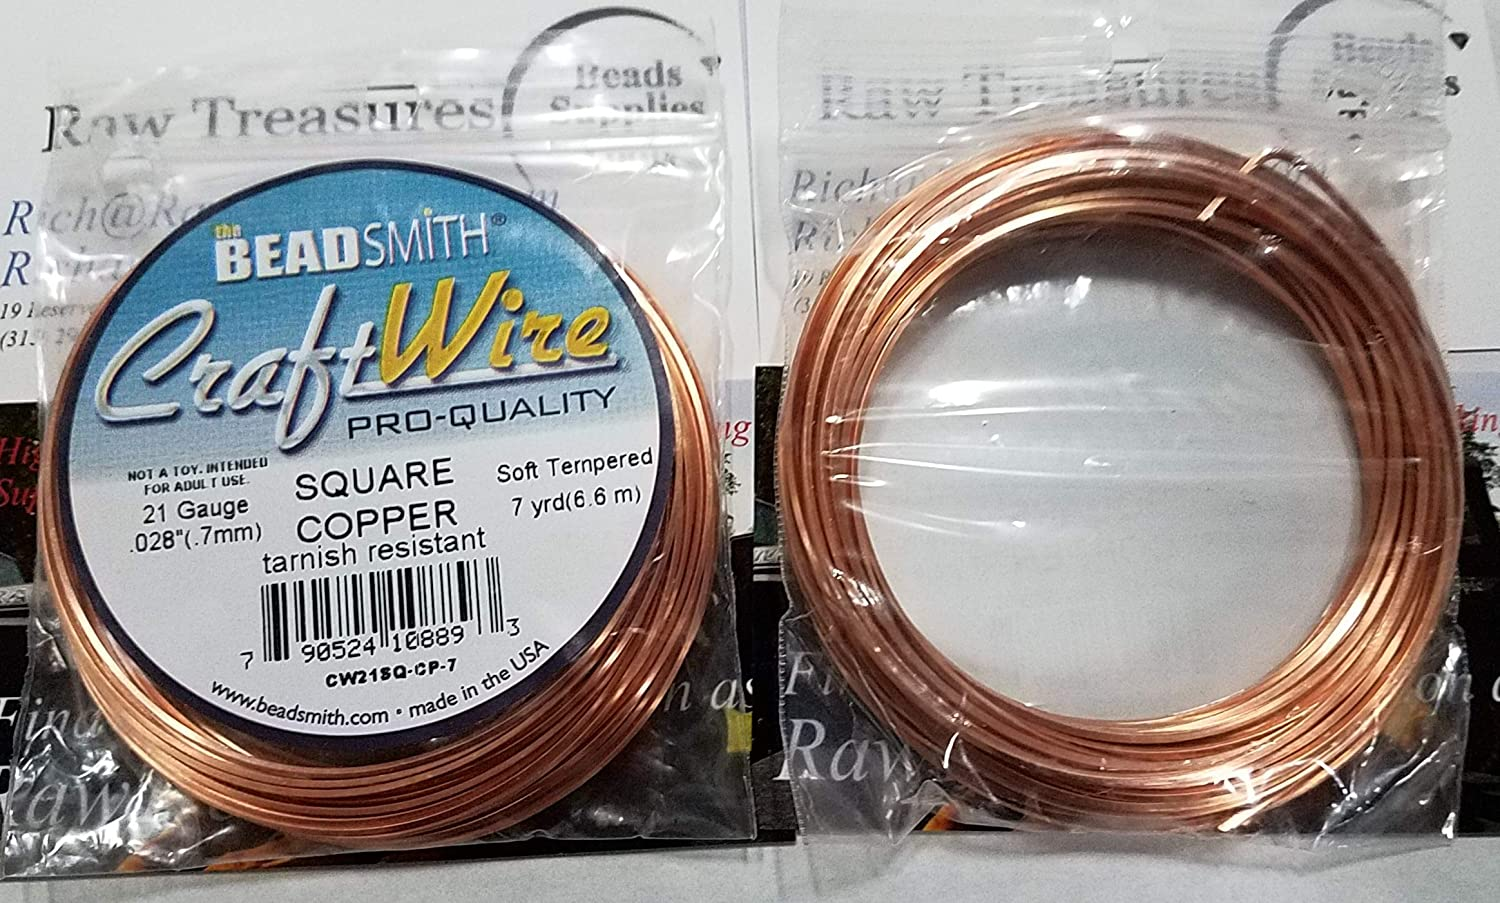 TWISTED Square Craft Wire BeadSmith Soft Tempered 21 gauge